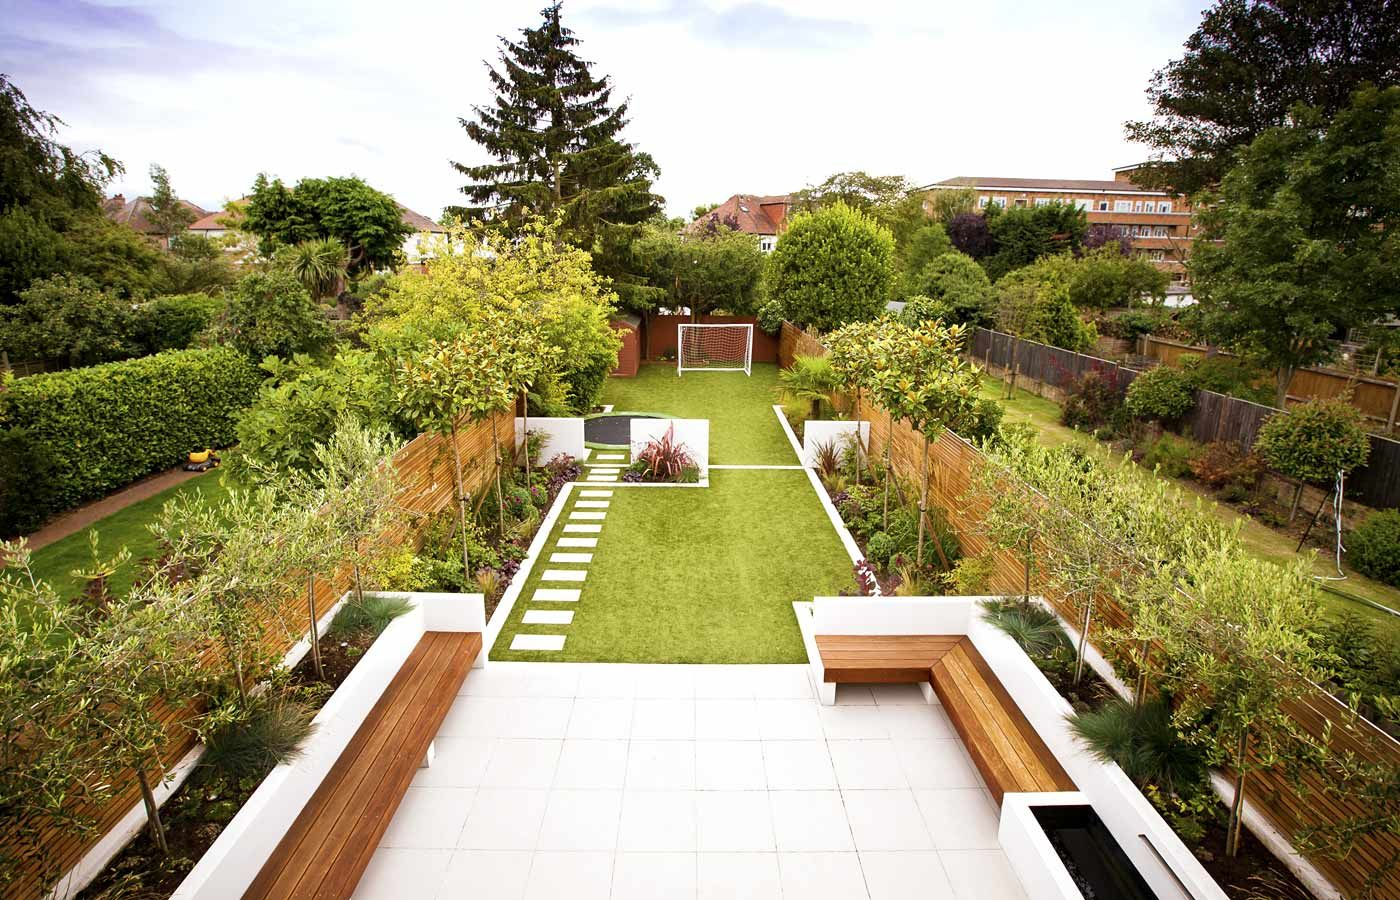 Zoned Garden Nice Use Of Small Trees As Screening Long Garden Design Ideas